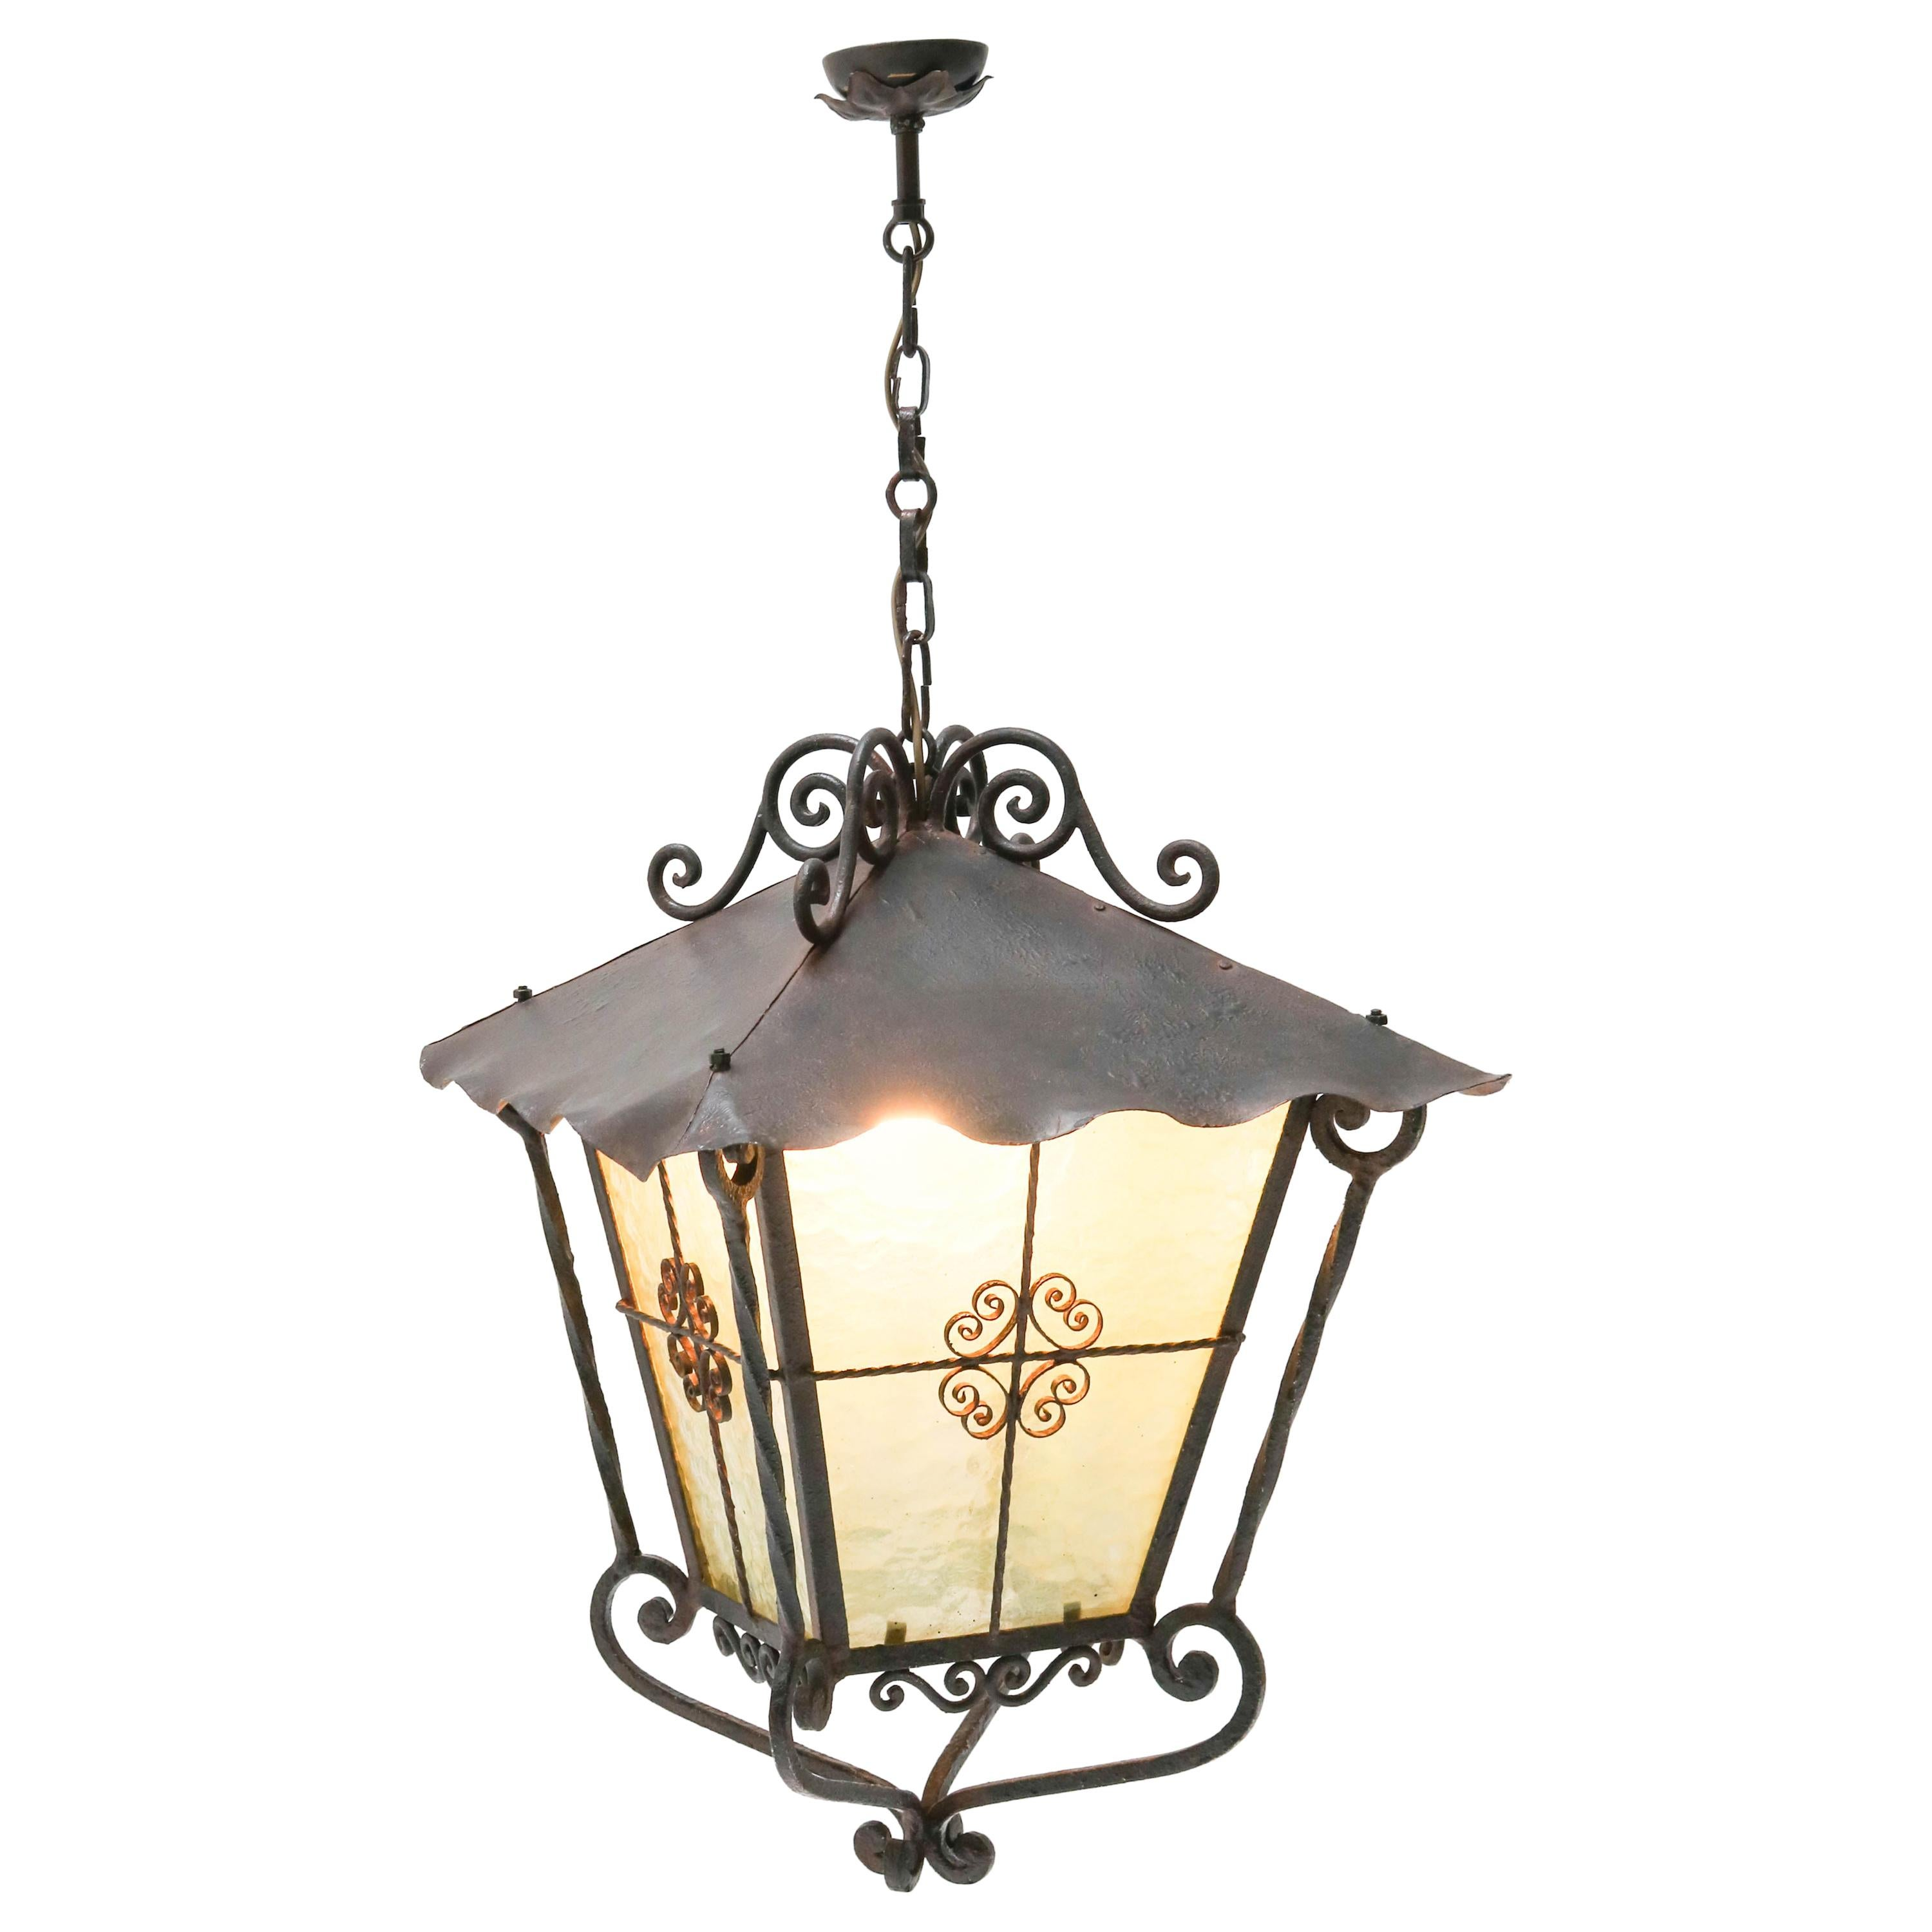 Large French Provincial Wrought Iron Lantern, 1950s